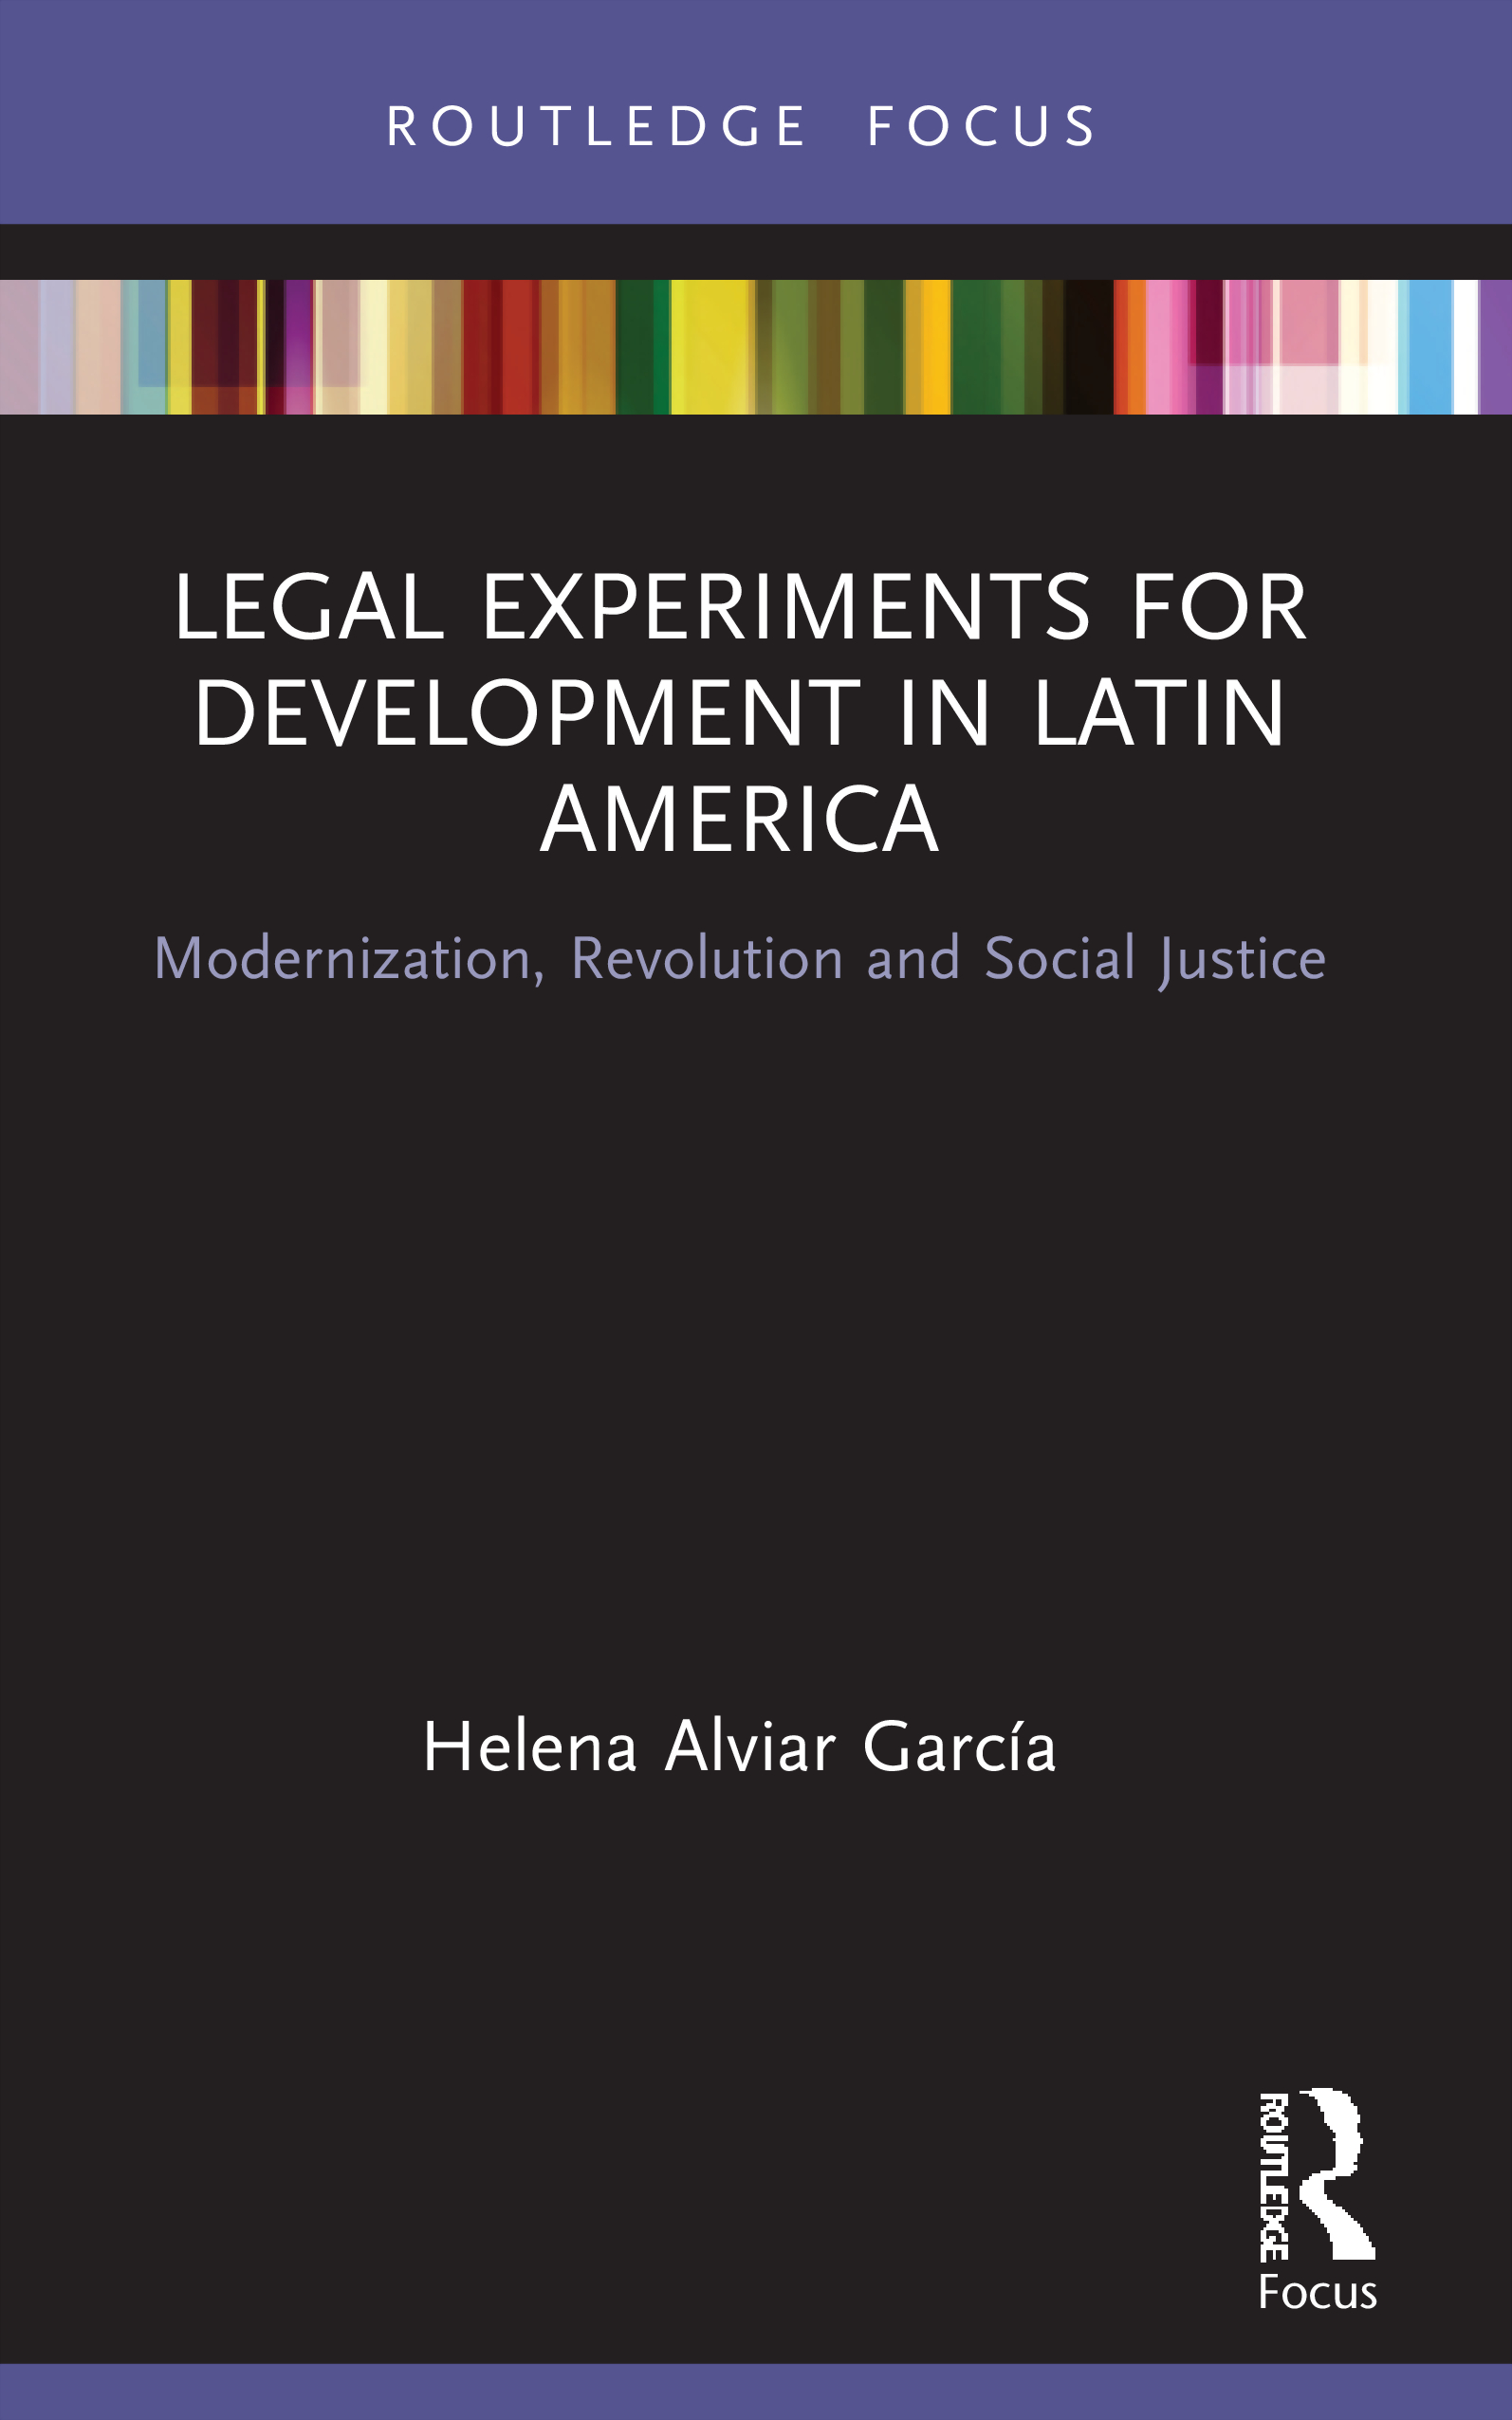 Legal Experiments for Development in Latin America